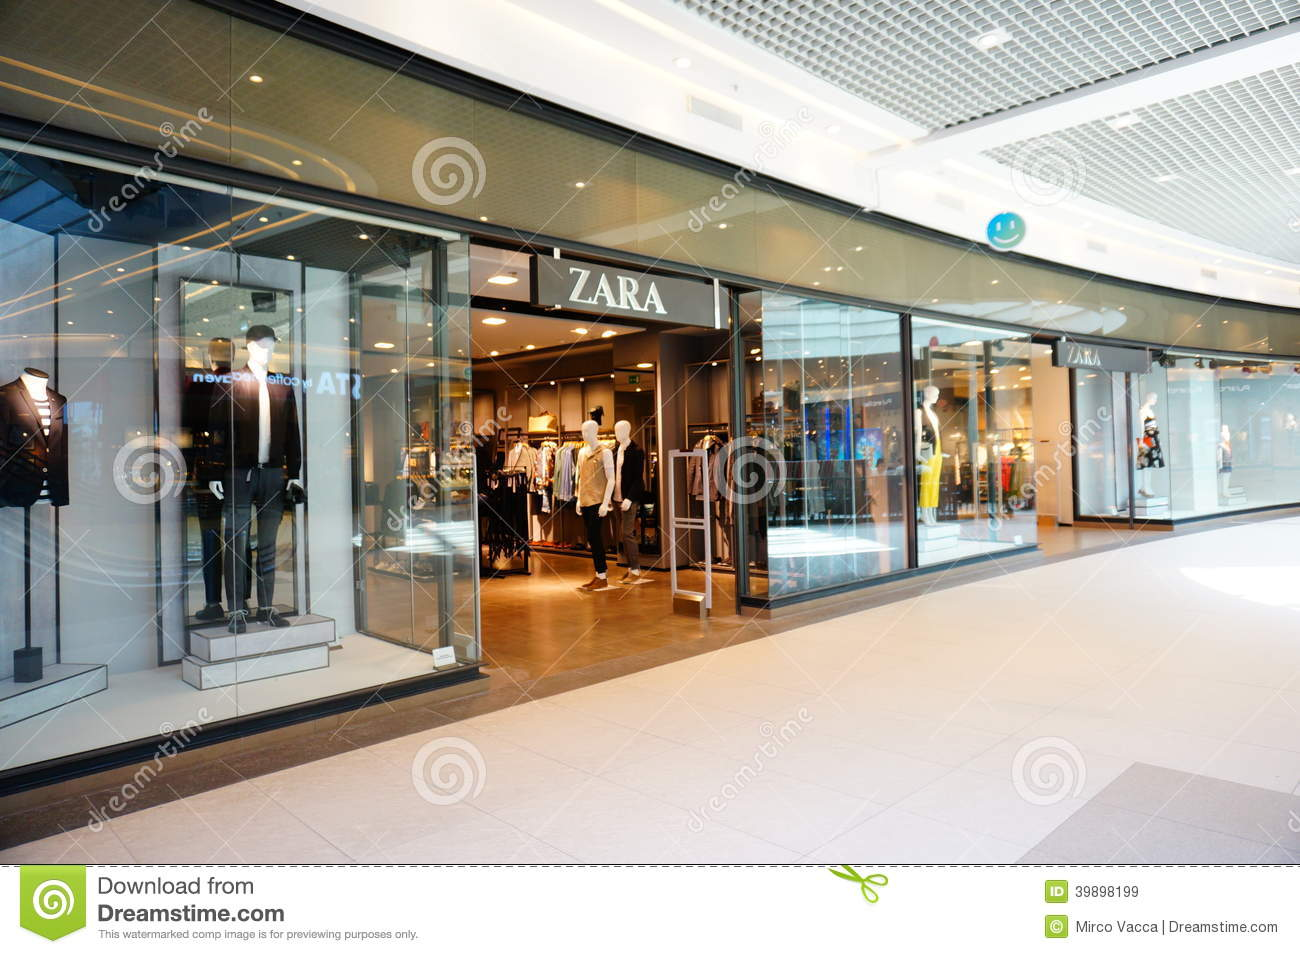 Mall clothes stores